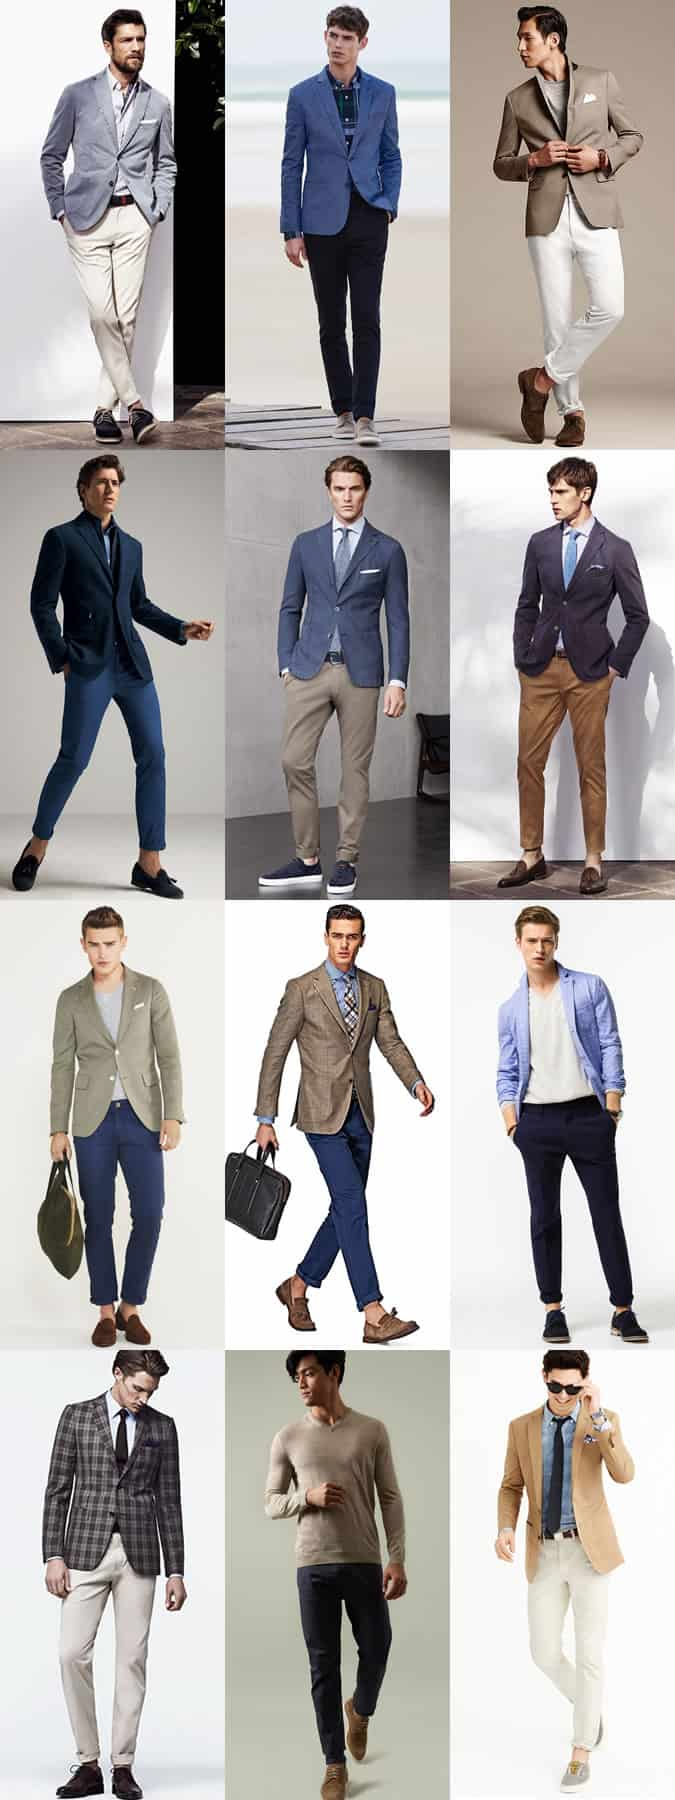 Men's Smart-Casual Chinos Outfit Inspiration Lookbook